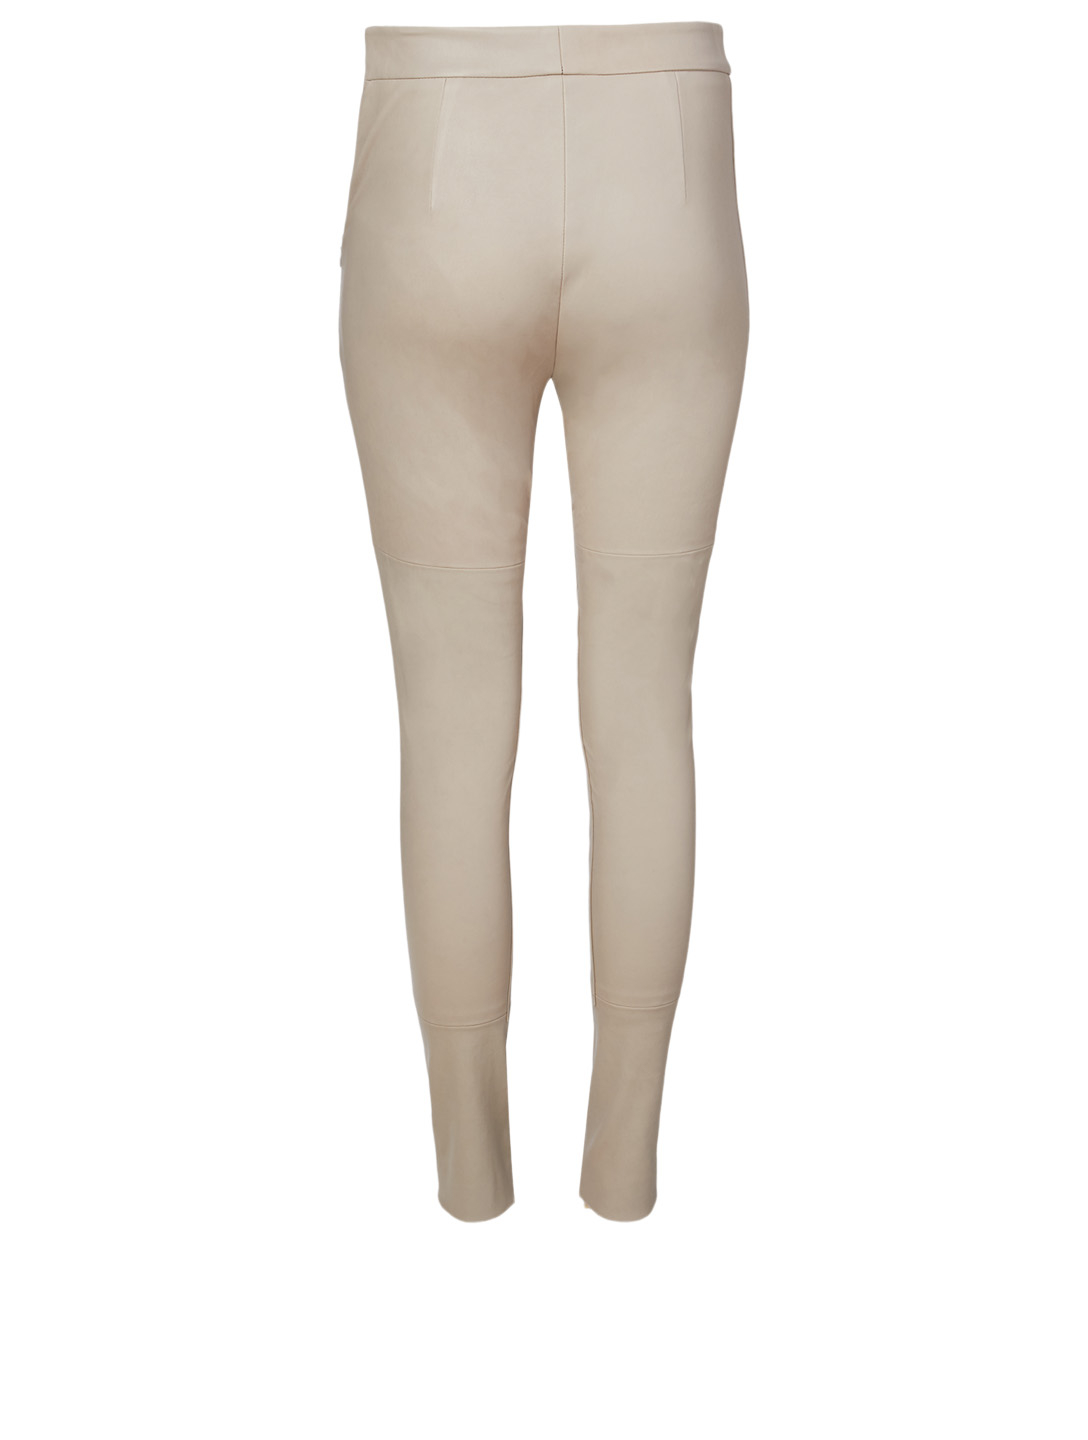 AKRIS Fia Leather Pants Women's Beige